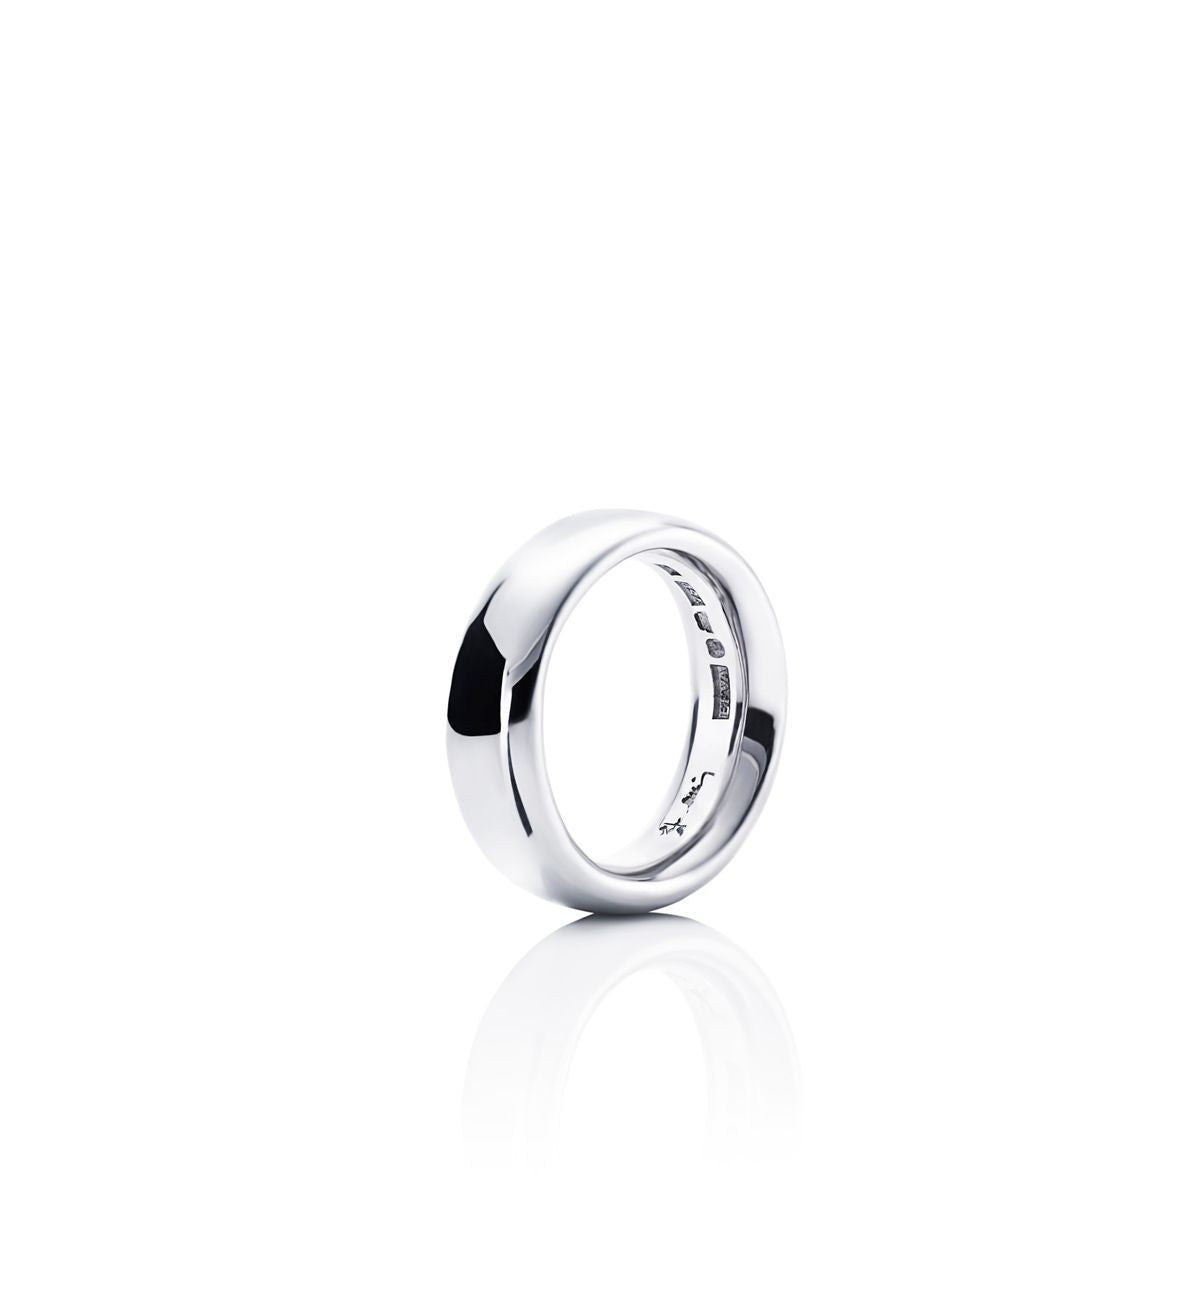 Efva Attling Big Oval Ring sormus